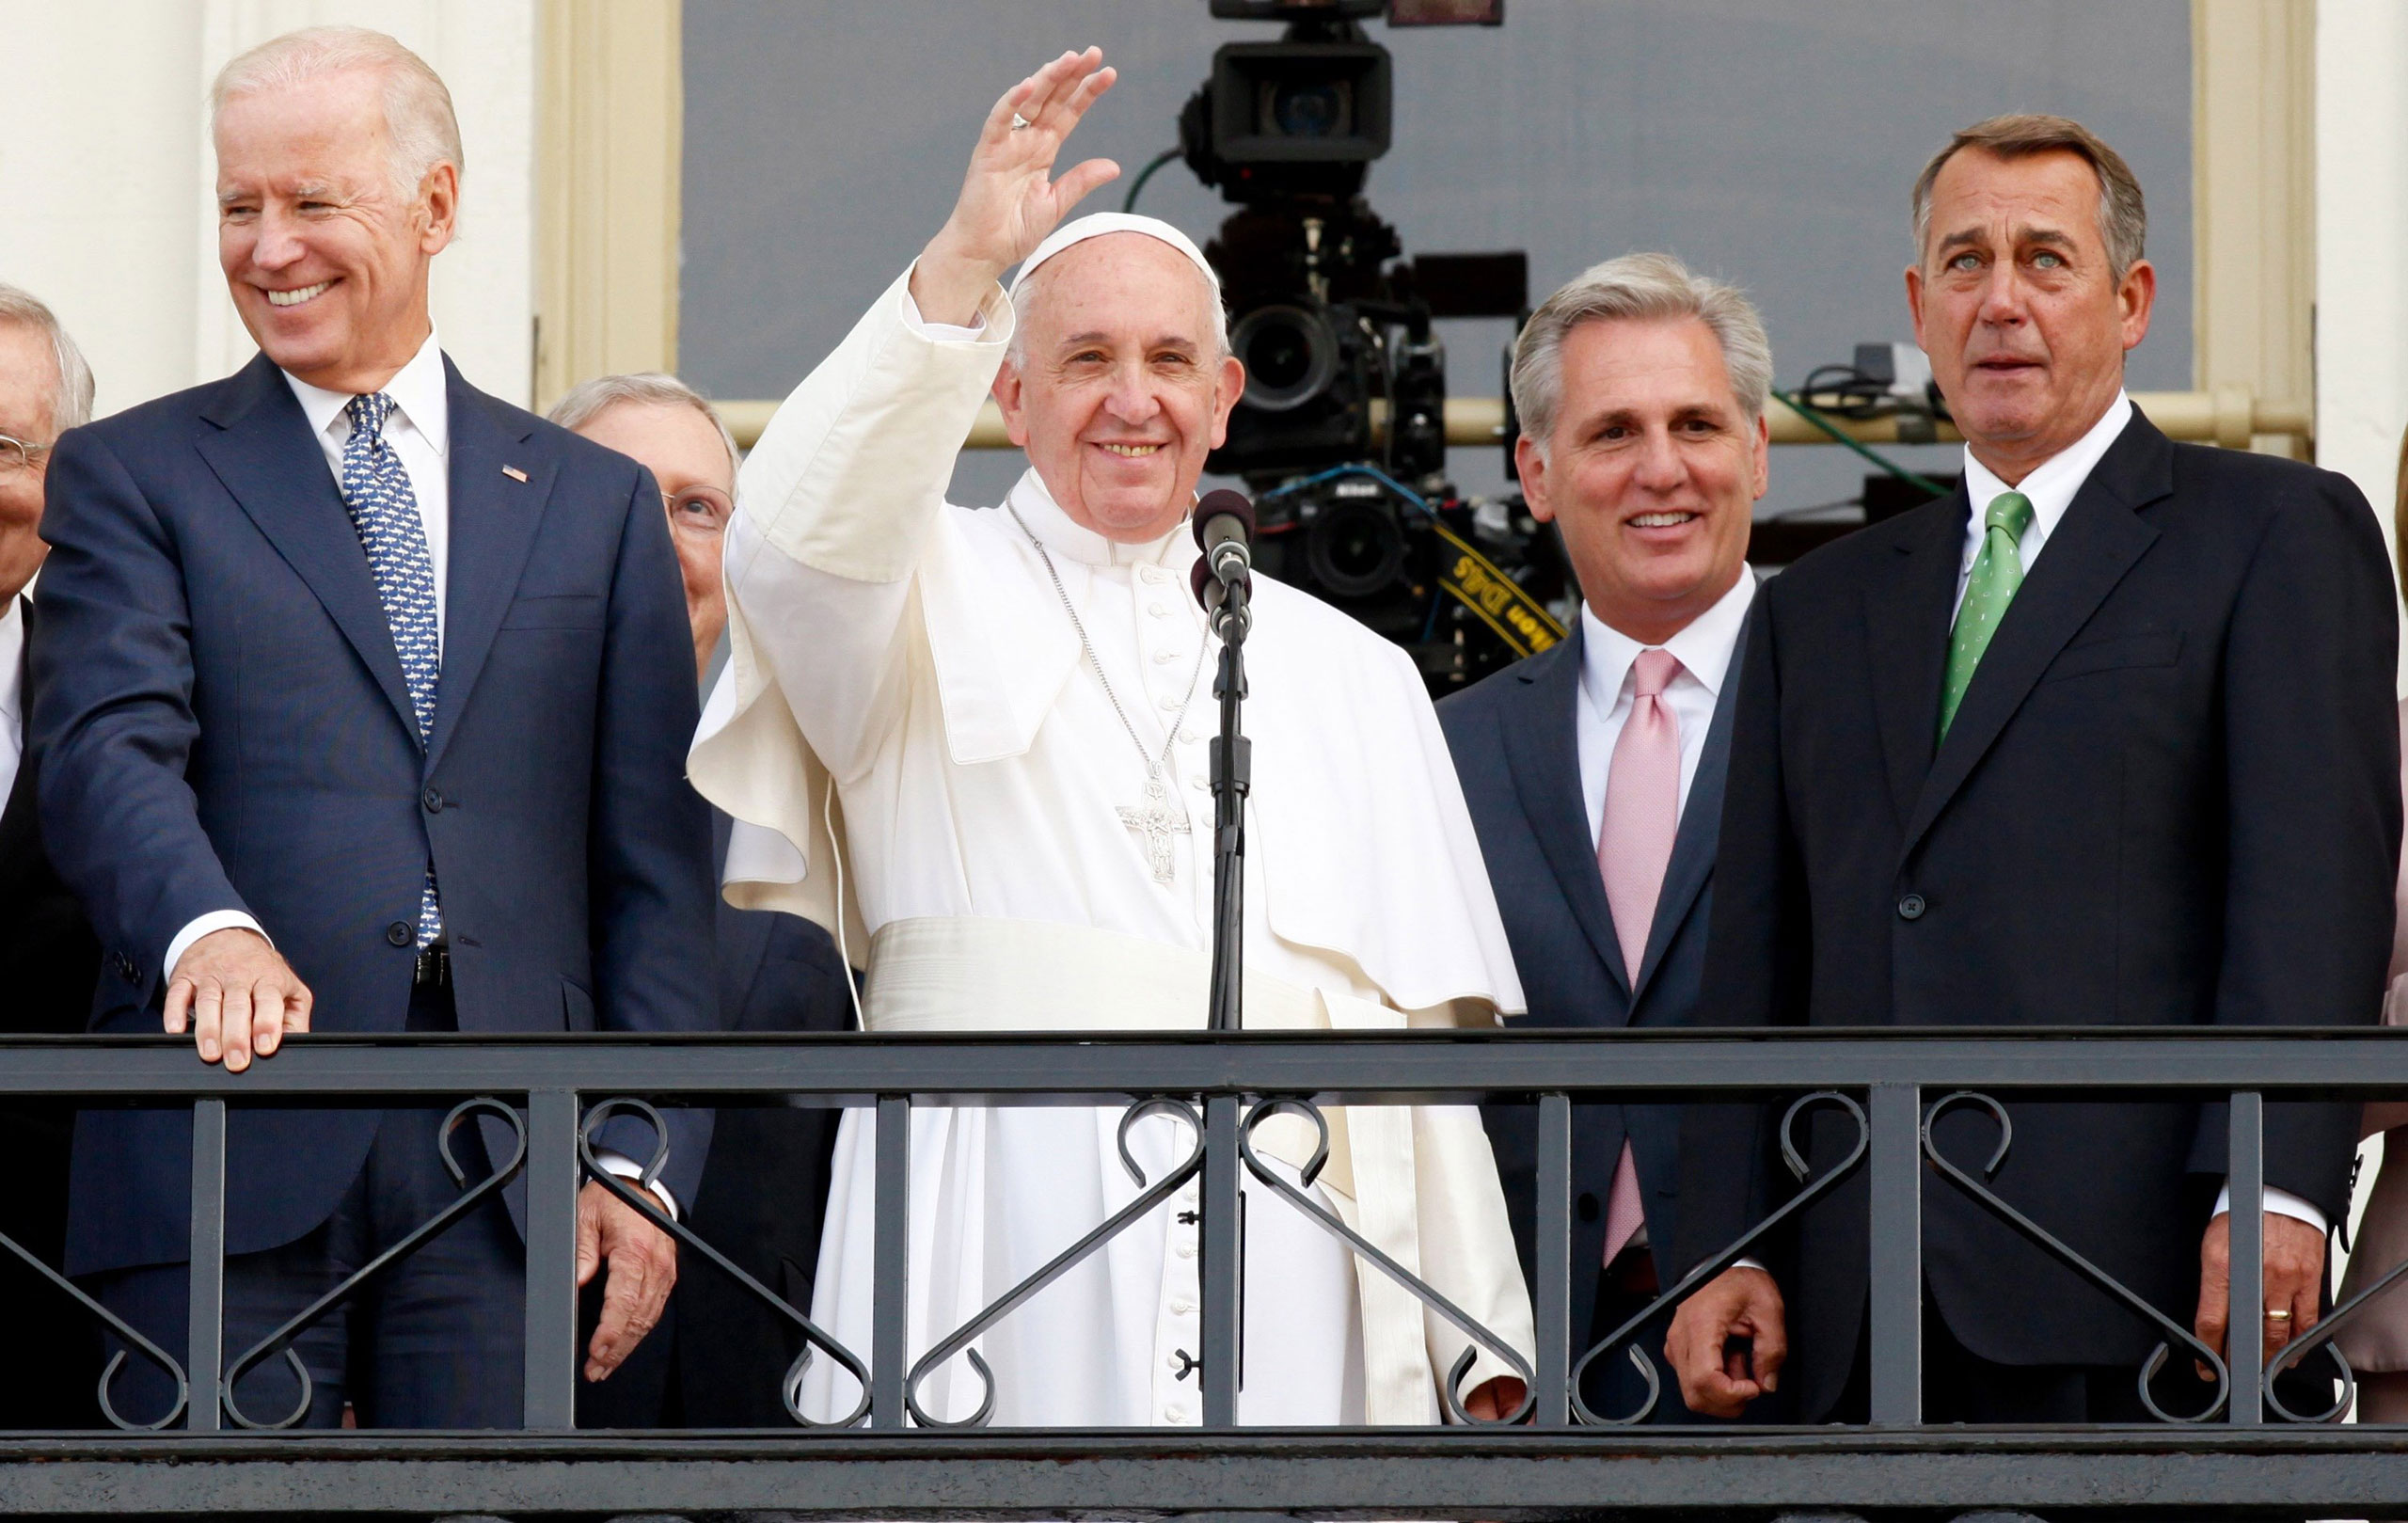 Pope Francis waves to the crowd from the US Capitol building with Vice President Joe Biden, Kevin McCarthy and John Boehner on Sept. 24, 2015 in Washington.